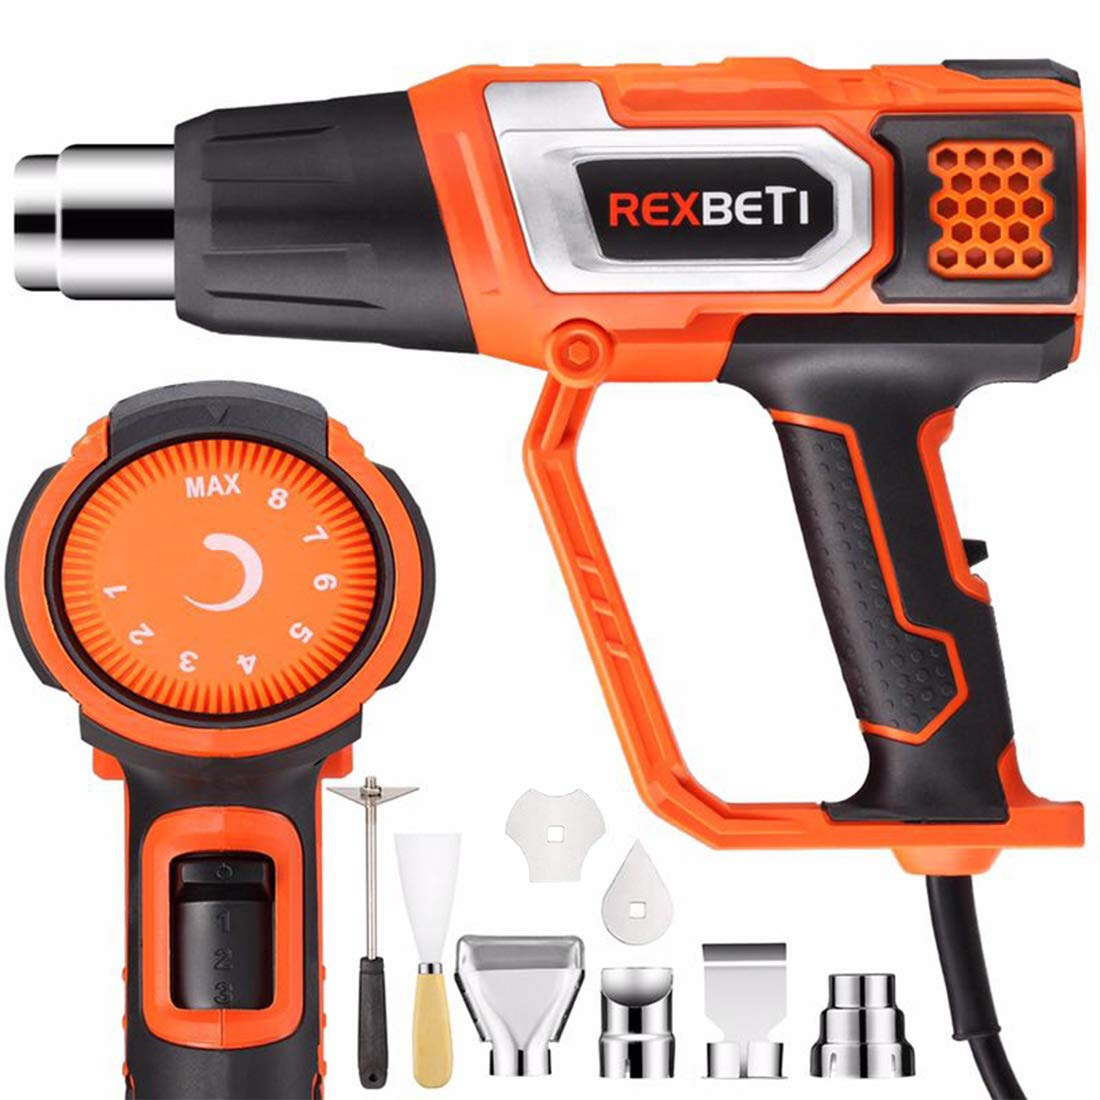 REXBETI Variable Temperature Heat Gun with 9 Attachments, Max Temperature up to 1210°F, 3 Air Flows Control, Fast Heating and Cooling, Perfect for Crafts, Shrinking PVC/Wrap, Stripping Paint